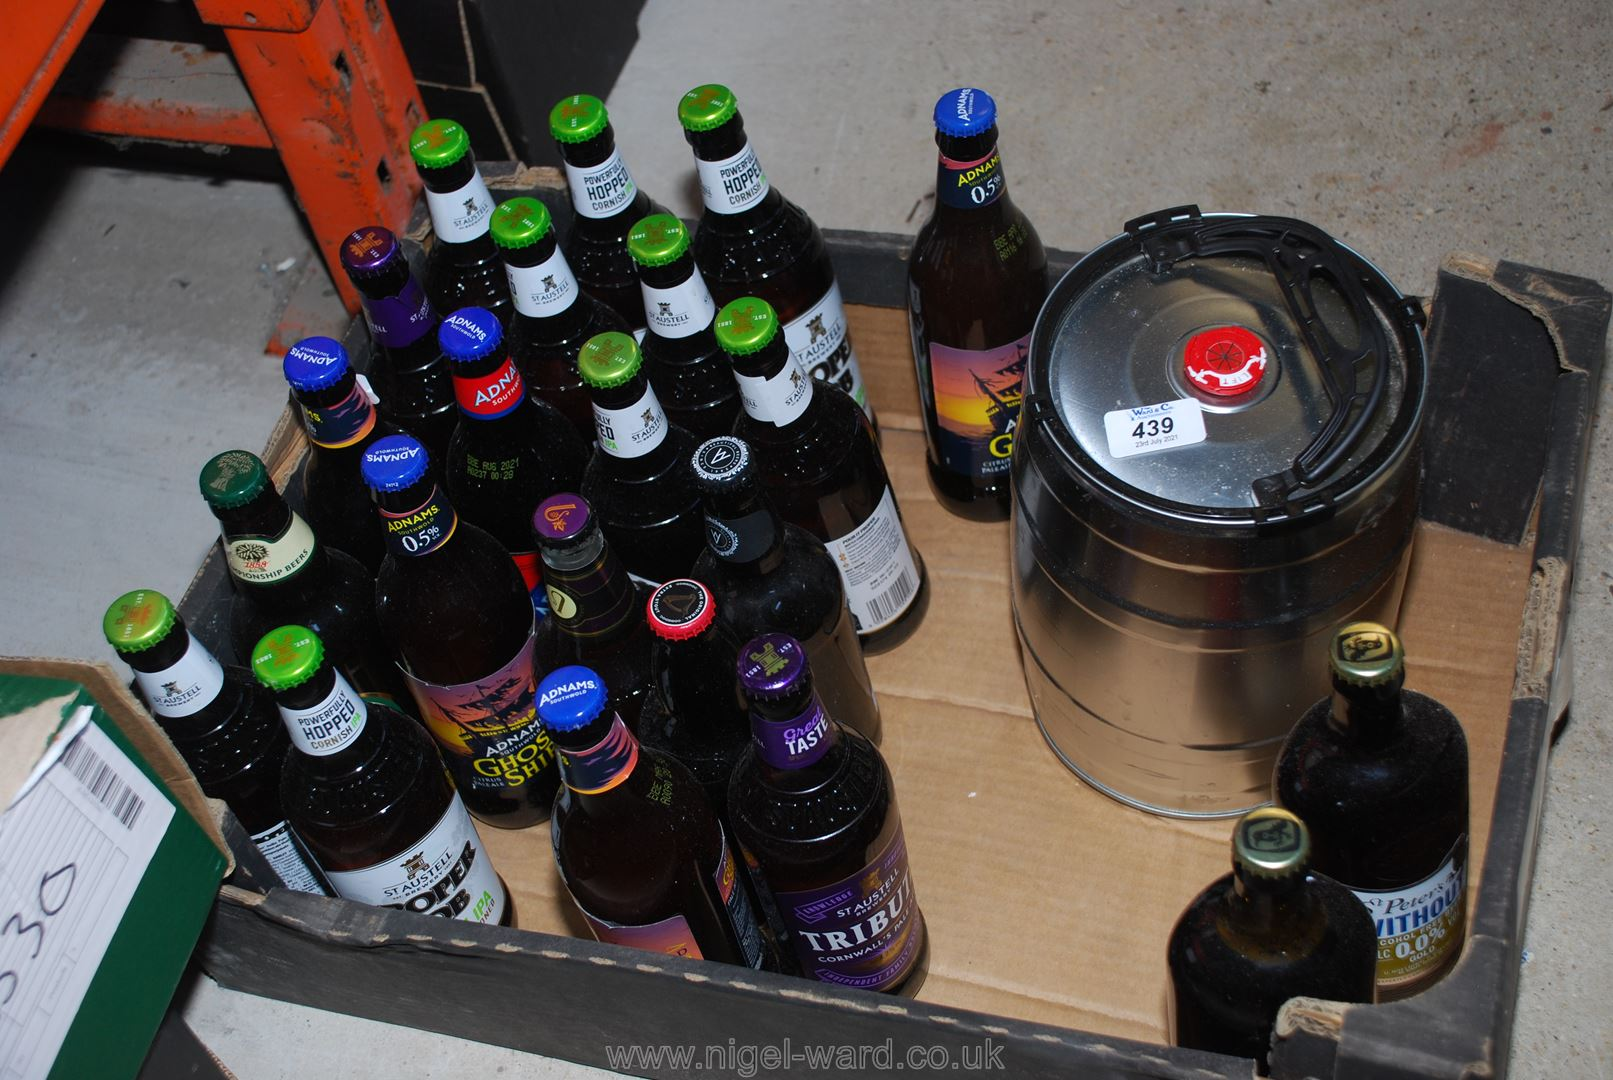 Quantity of bottle beer, Tribute,